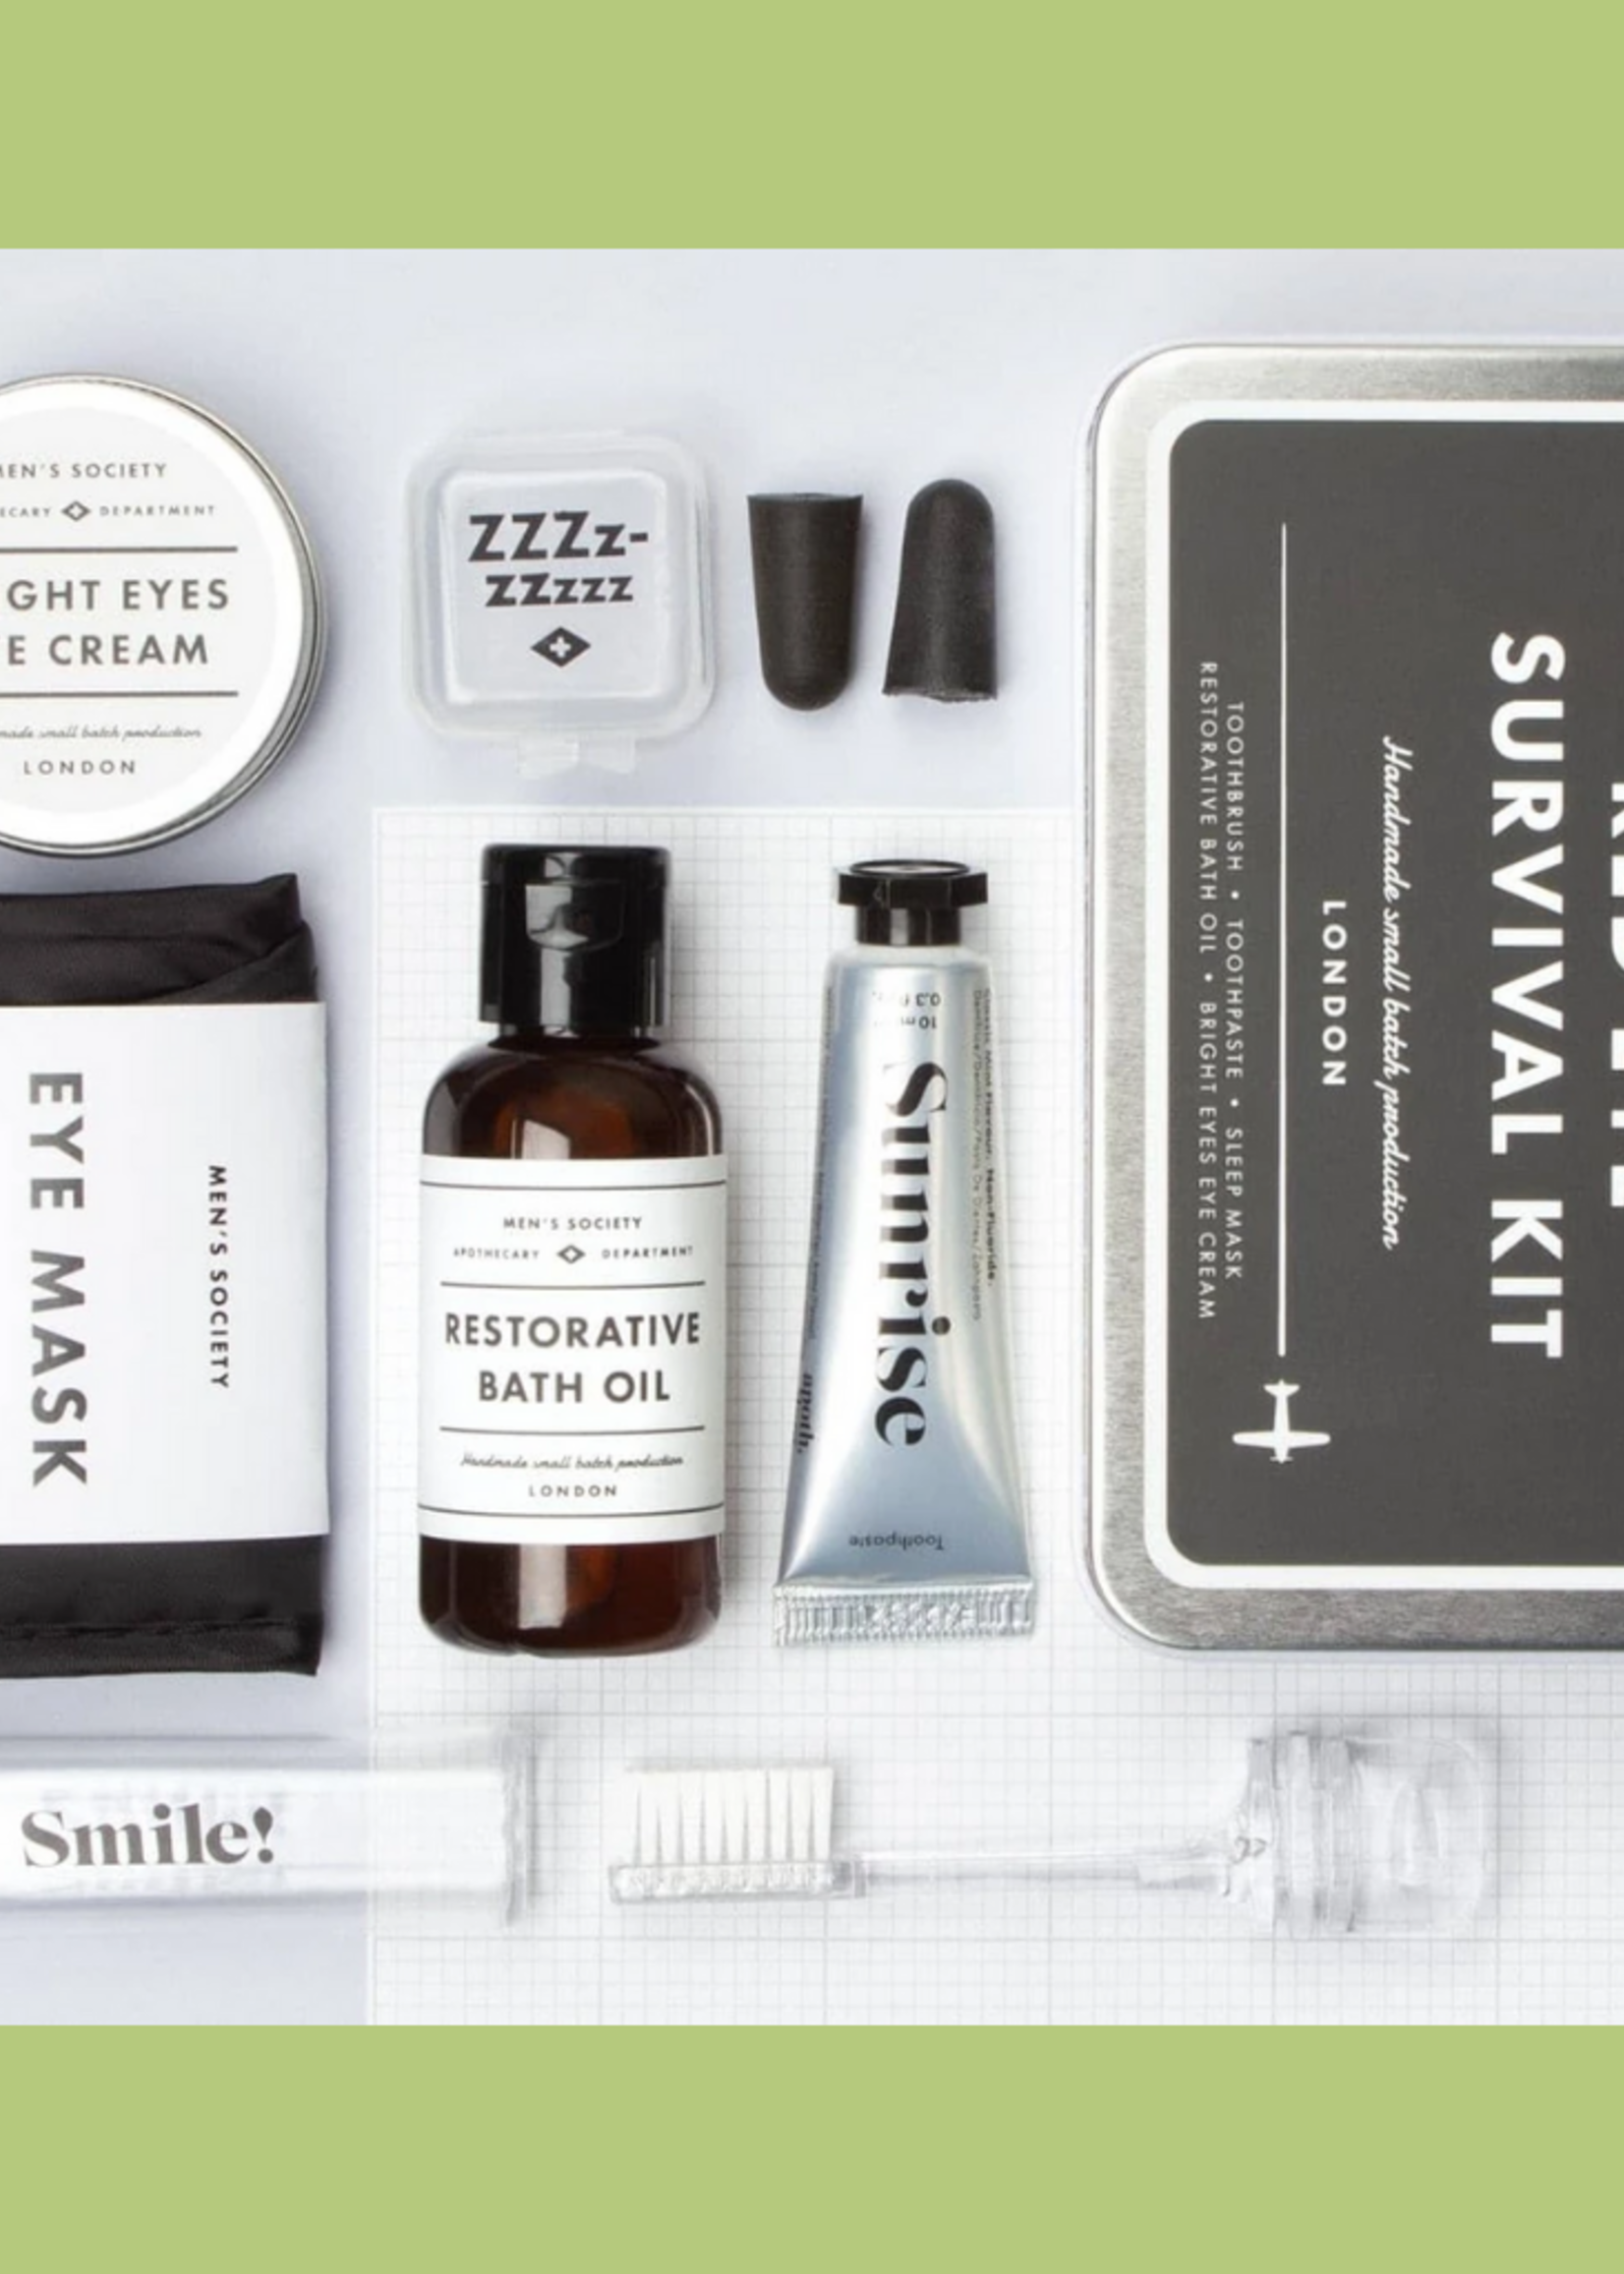 The Men's Society Red Eye Survival Kit